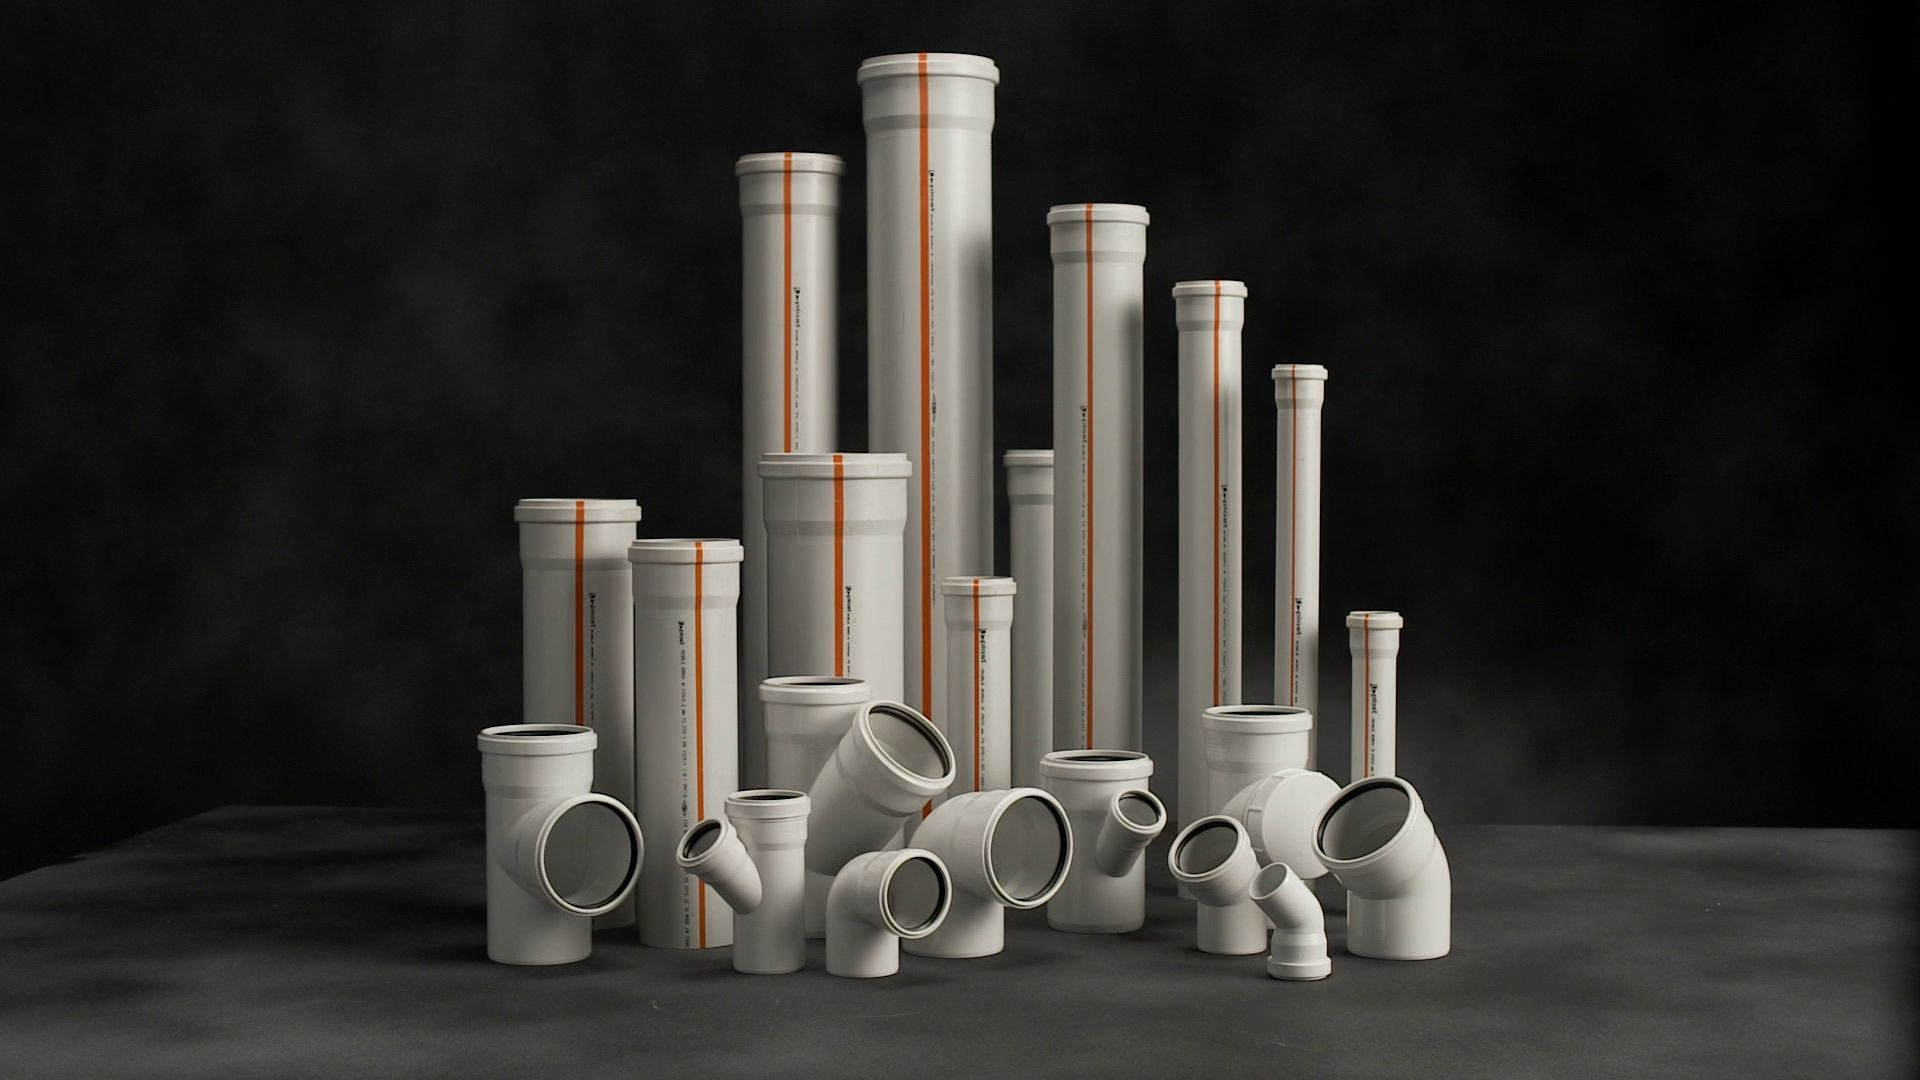 UPVC waste water pipe and fittings